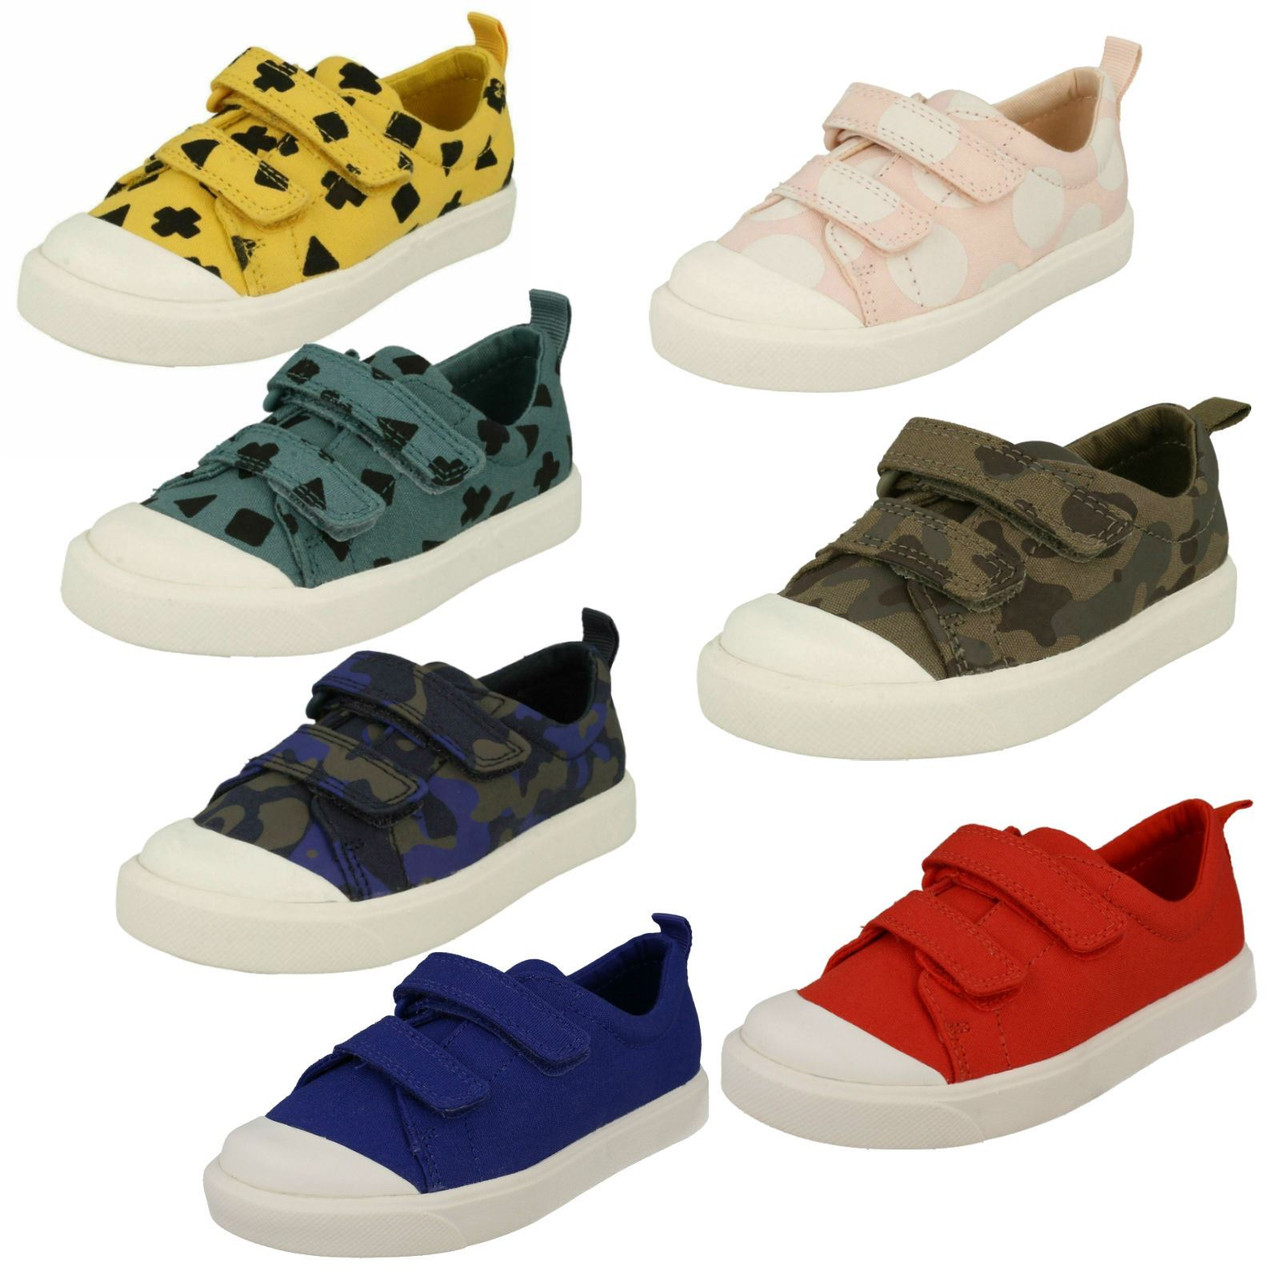 Childrens Boys Girls Clarks Hook /& Loop Patterned Canvas Shoes /'City Flare Lo K/'